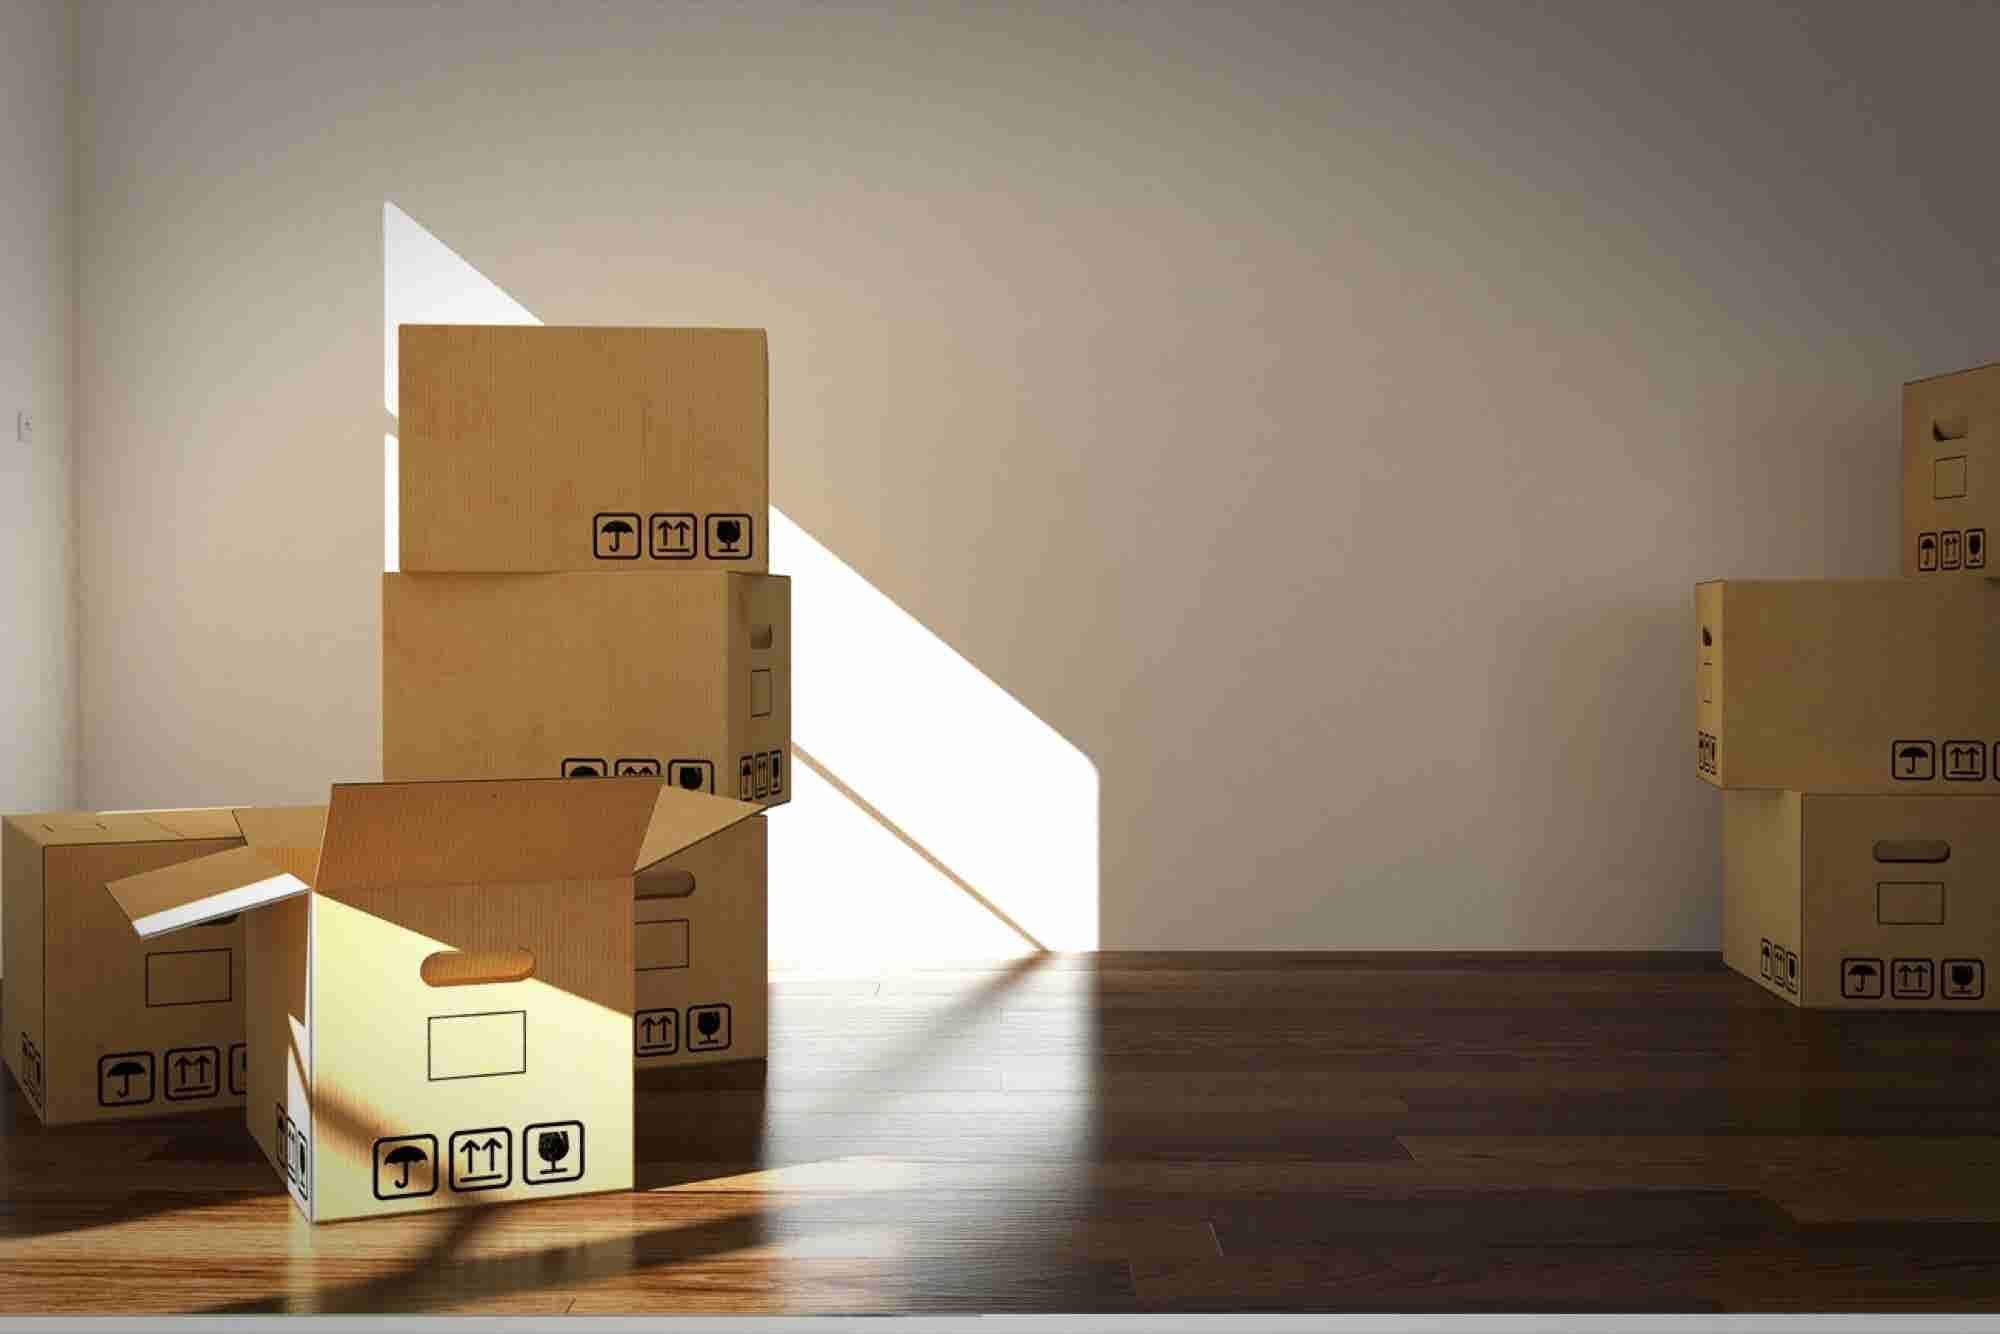 5 Crucial Questions You Must Ask Before Moving Your Business